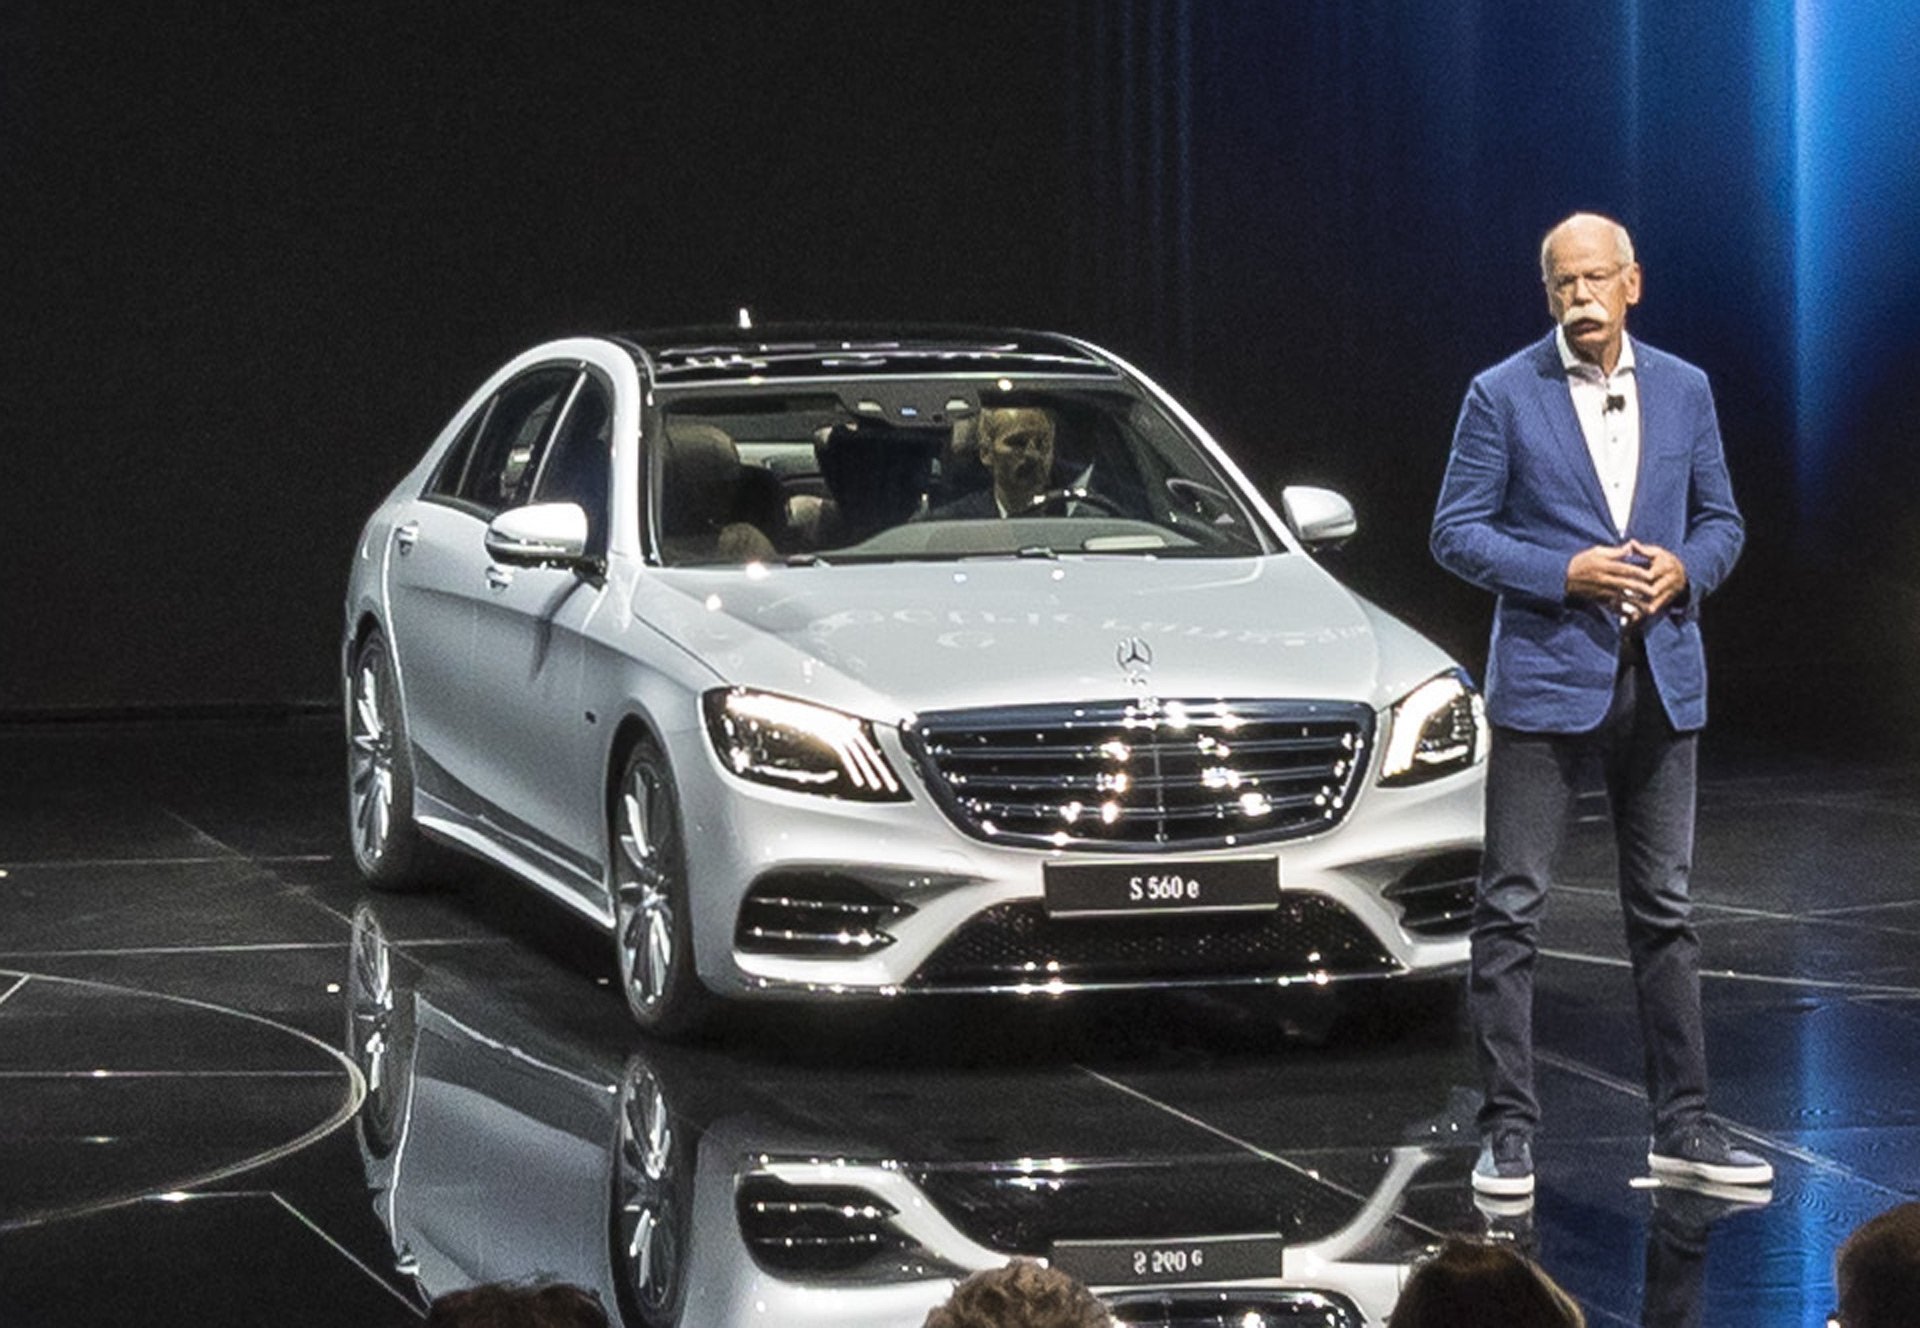 2018 Mercedes Benz S560e Plug In Hybrid Joins Updated S Class Range